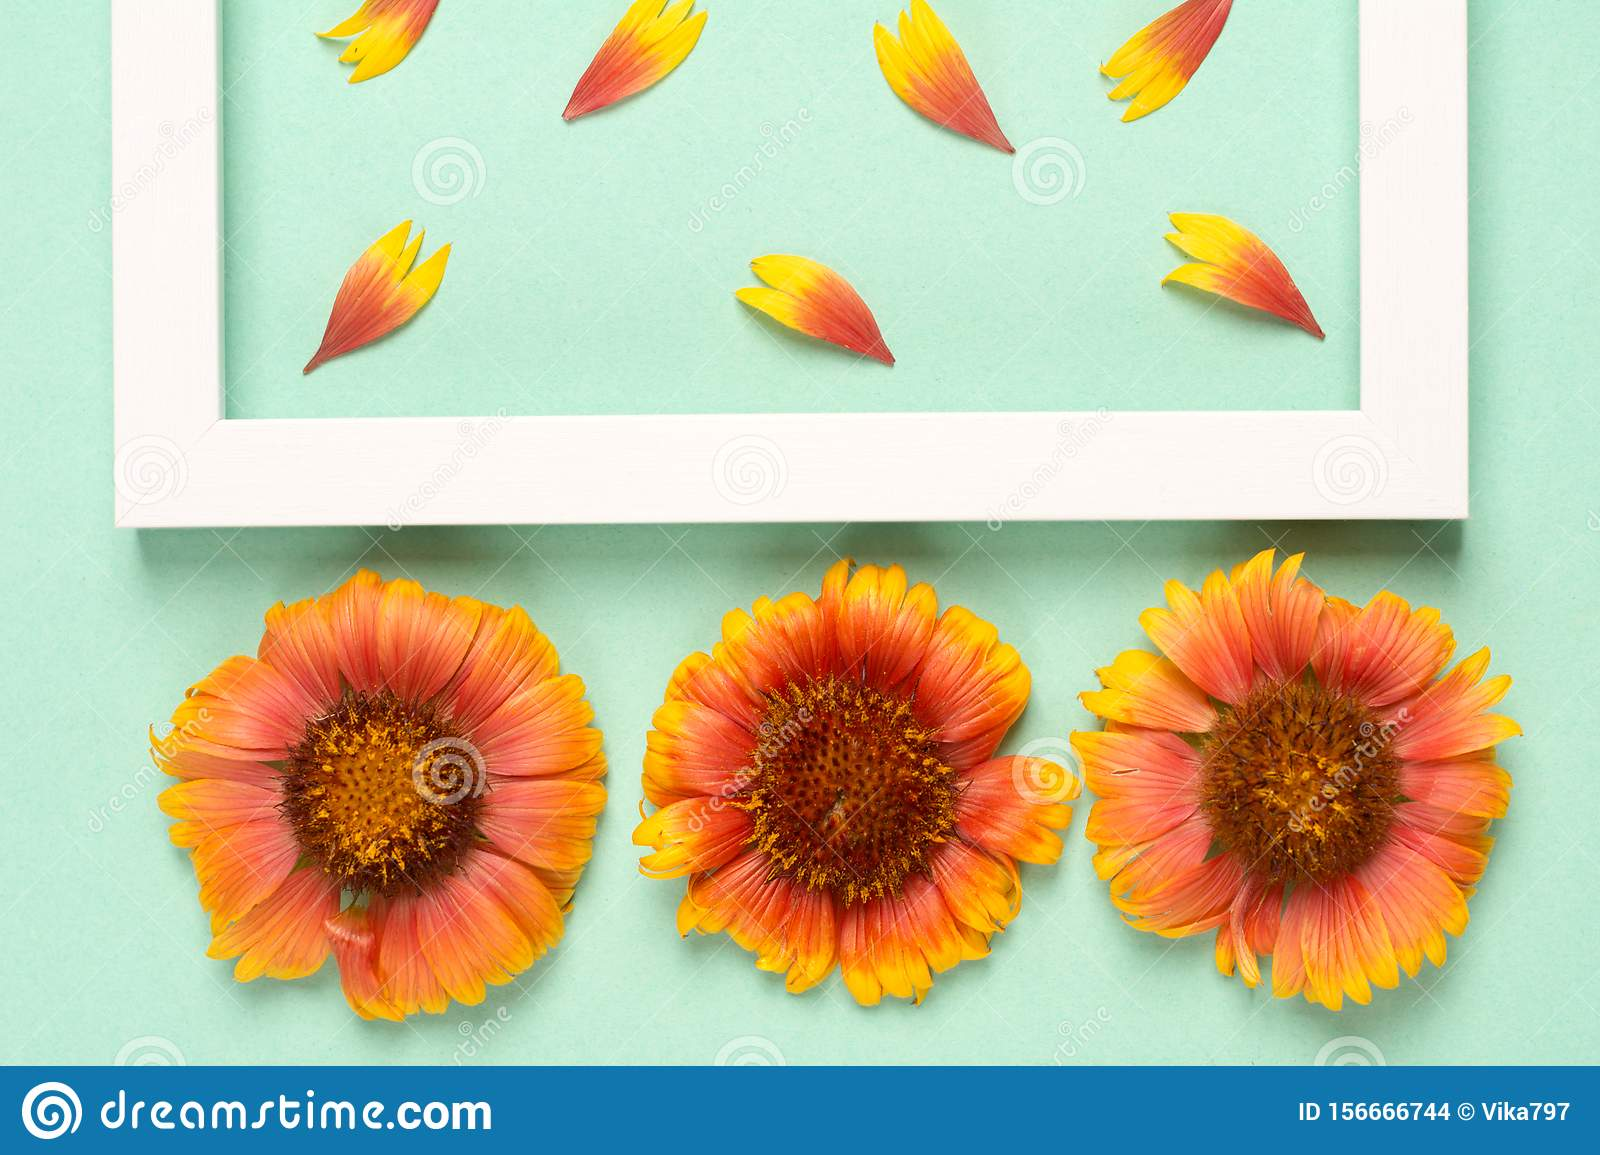 Orange flowers and petals, photo frame on a mint background.